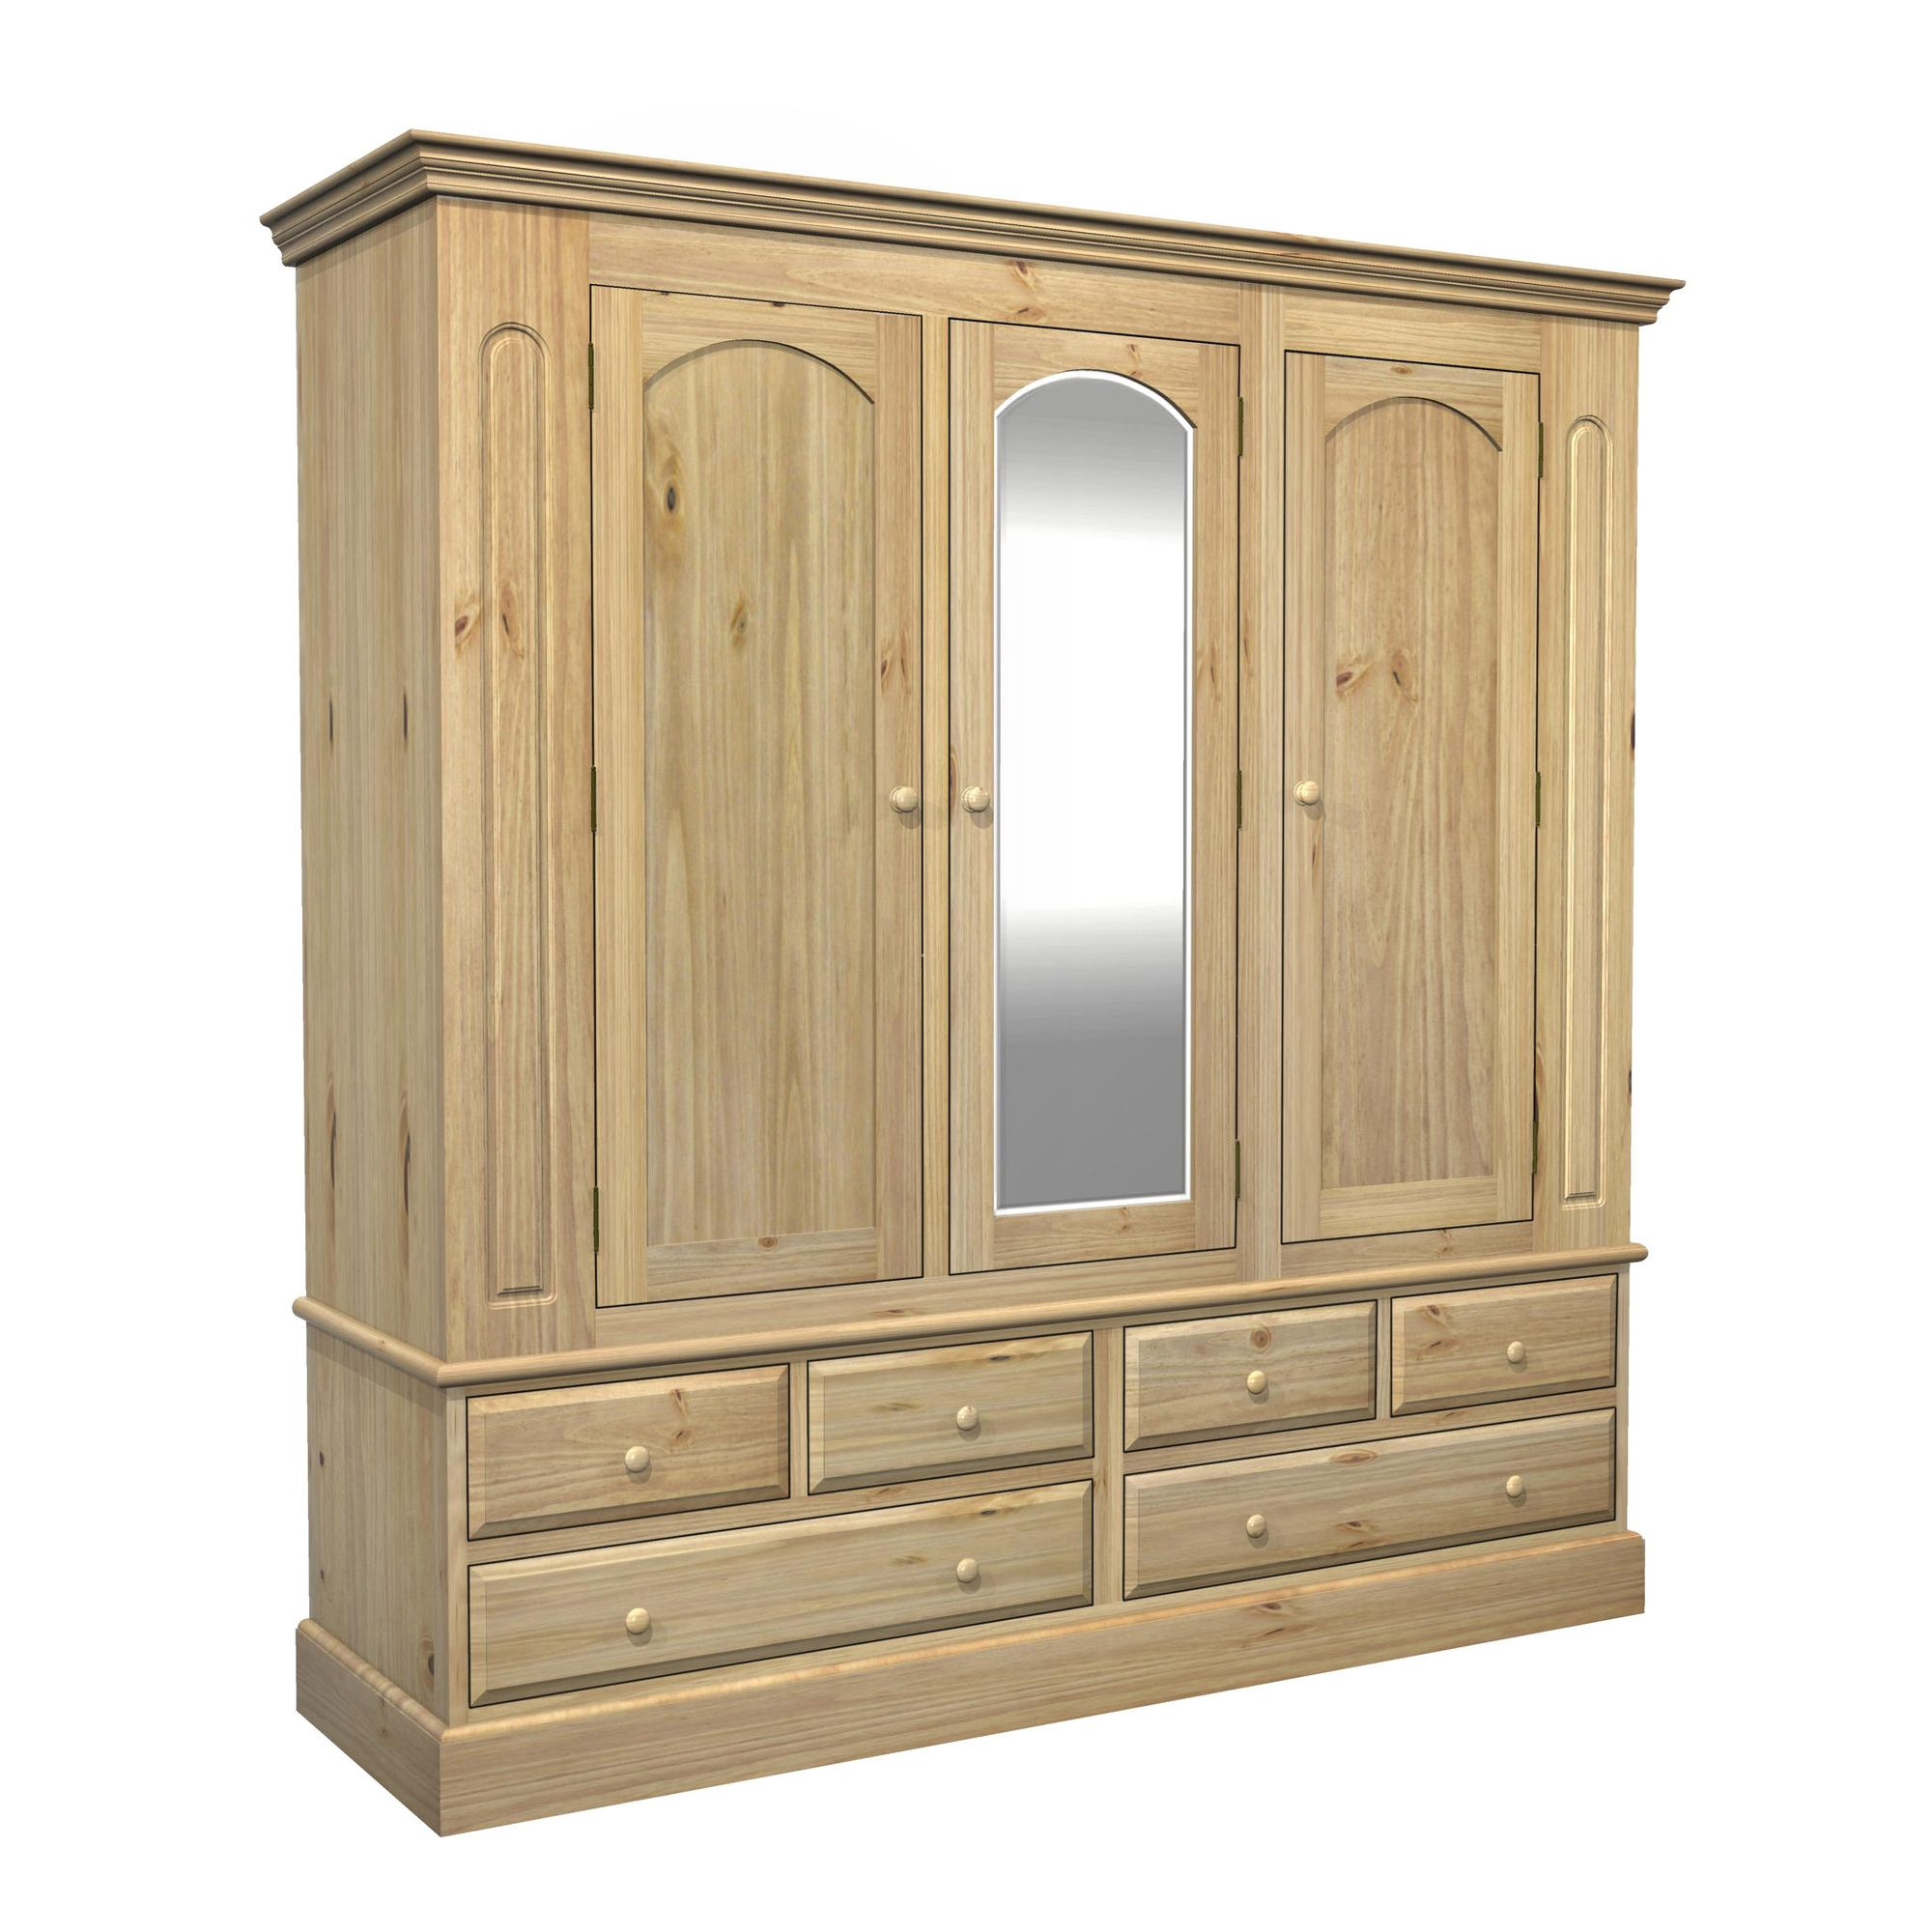 Kelburn Furniture Woodland Pine Triple Wardrobe